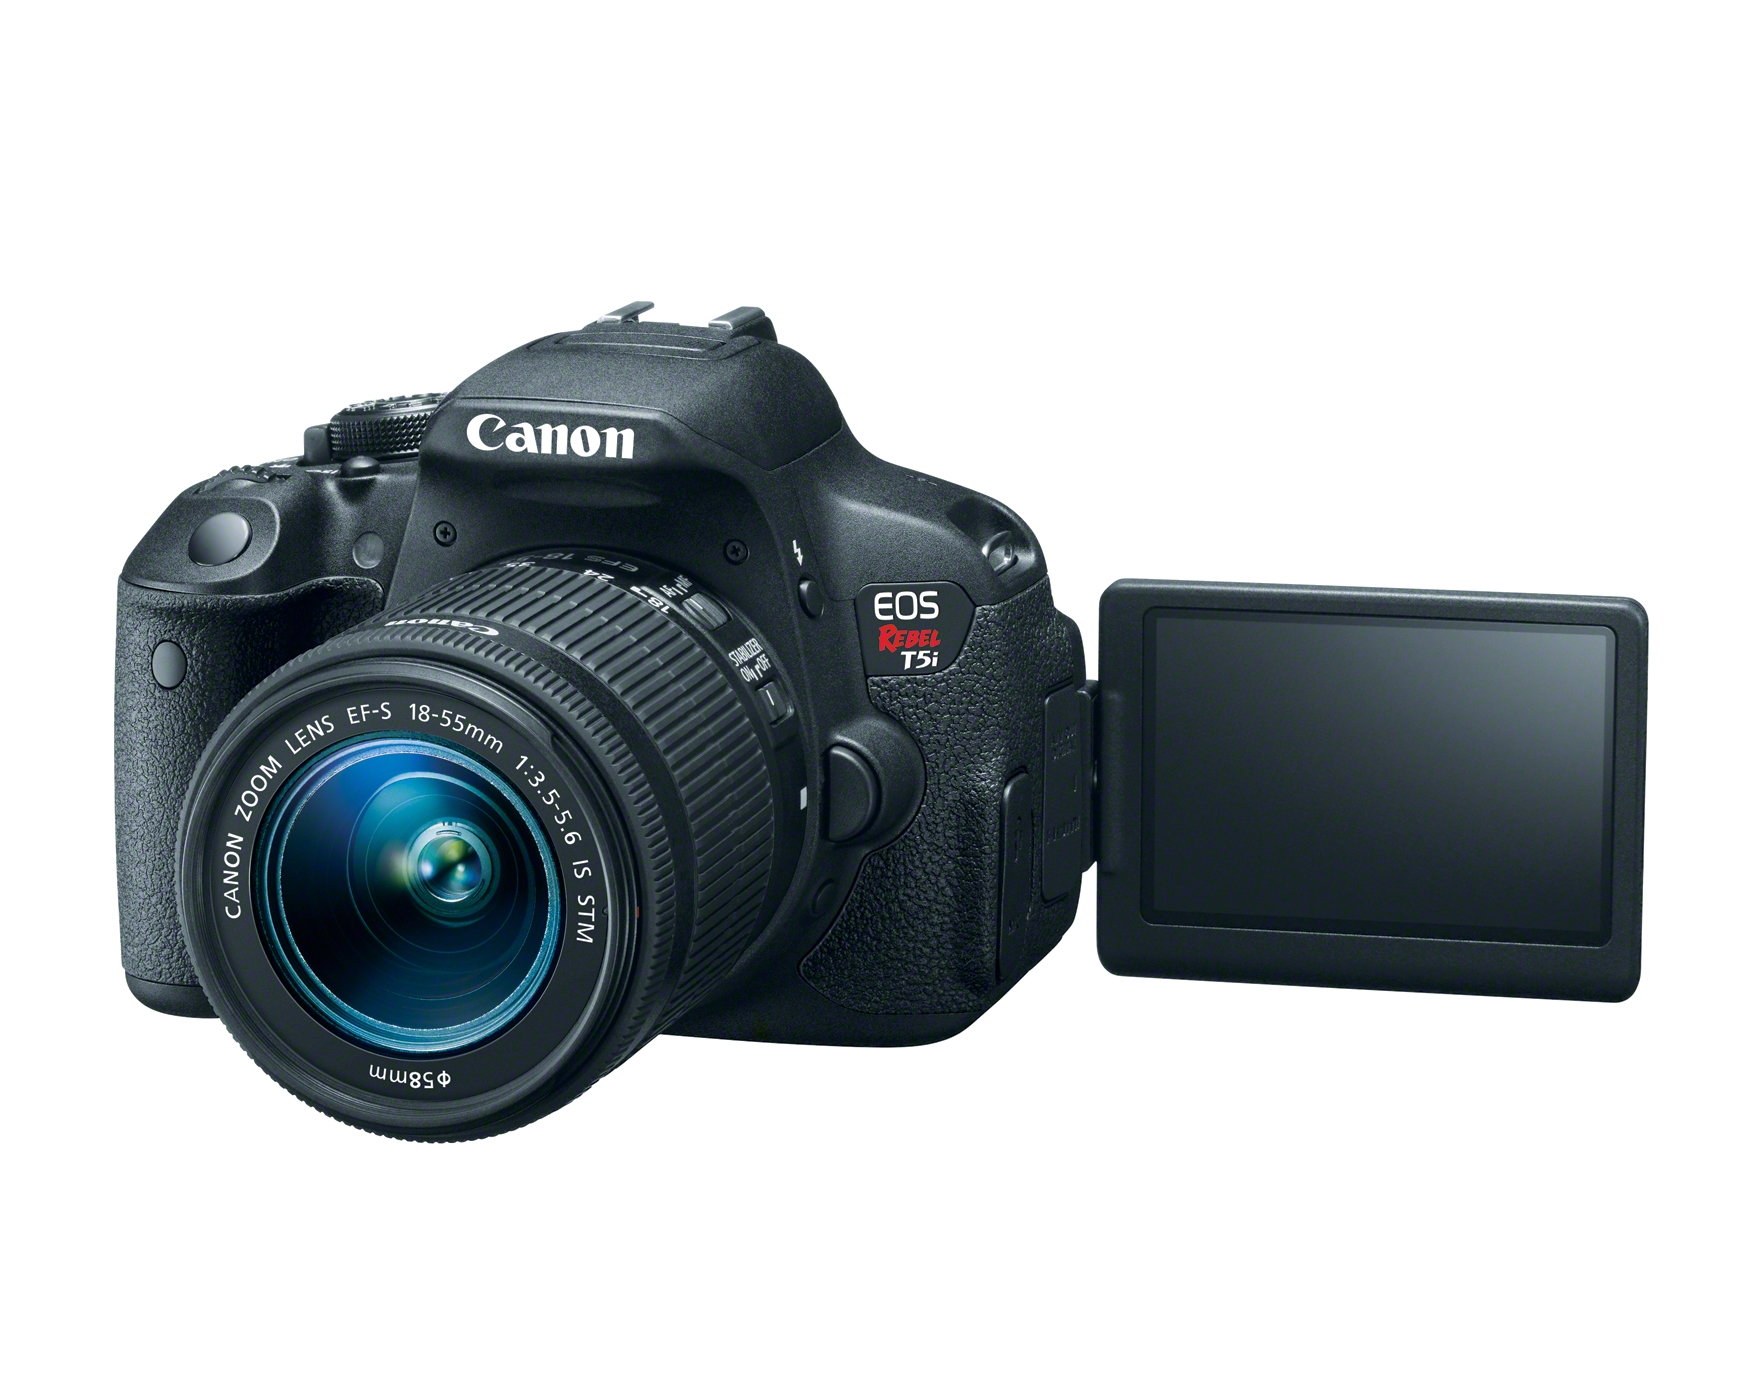 HR T5i EFS18 55 IS STM LCD OPEN Canon EOS T5i (700D)   Video Review